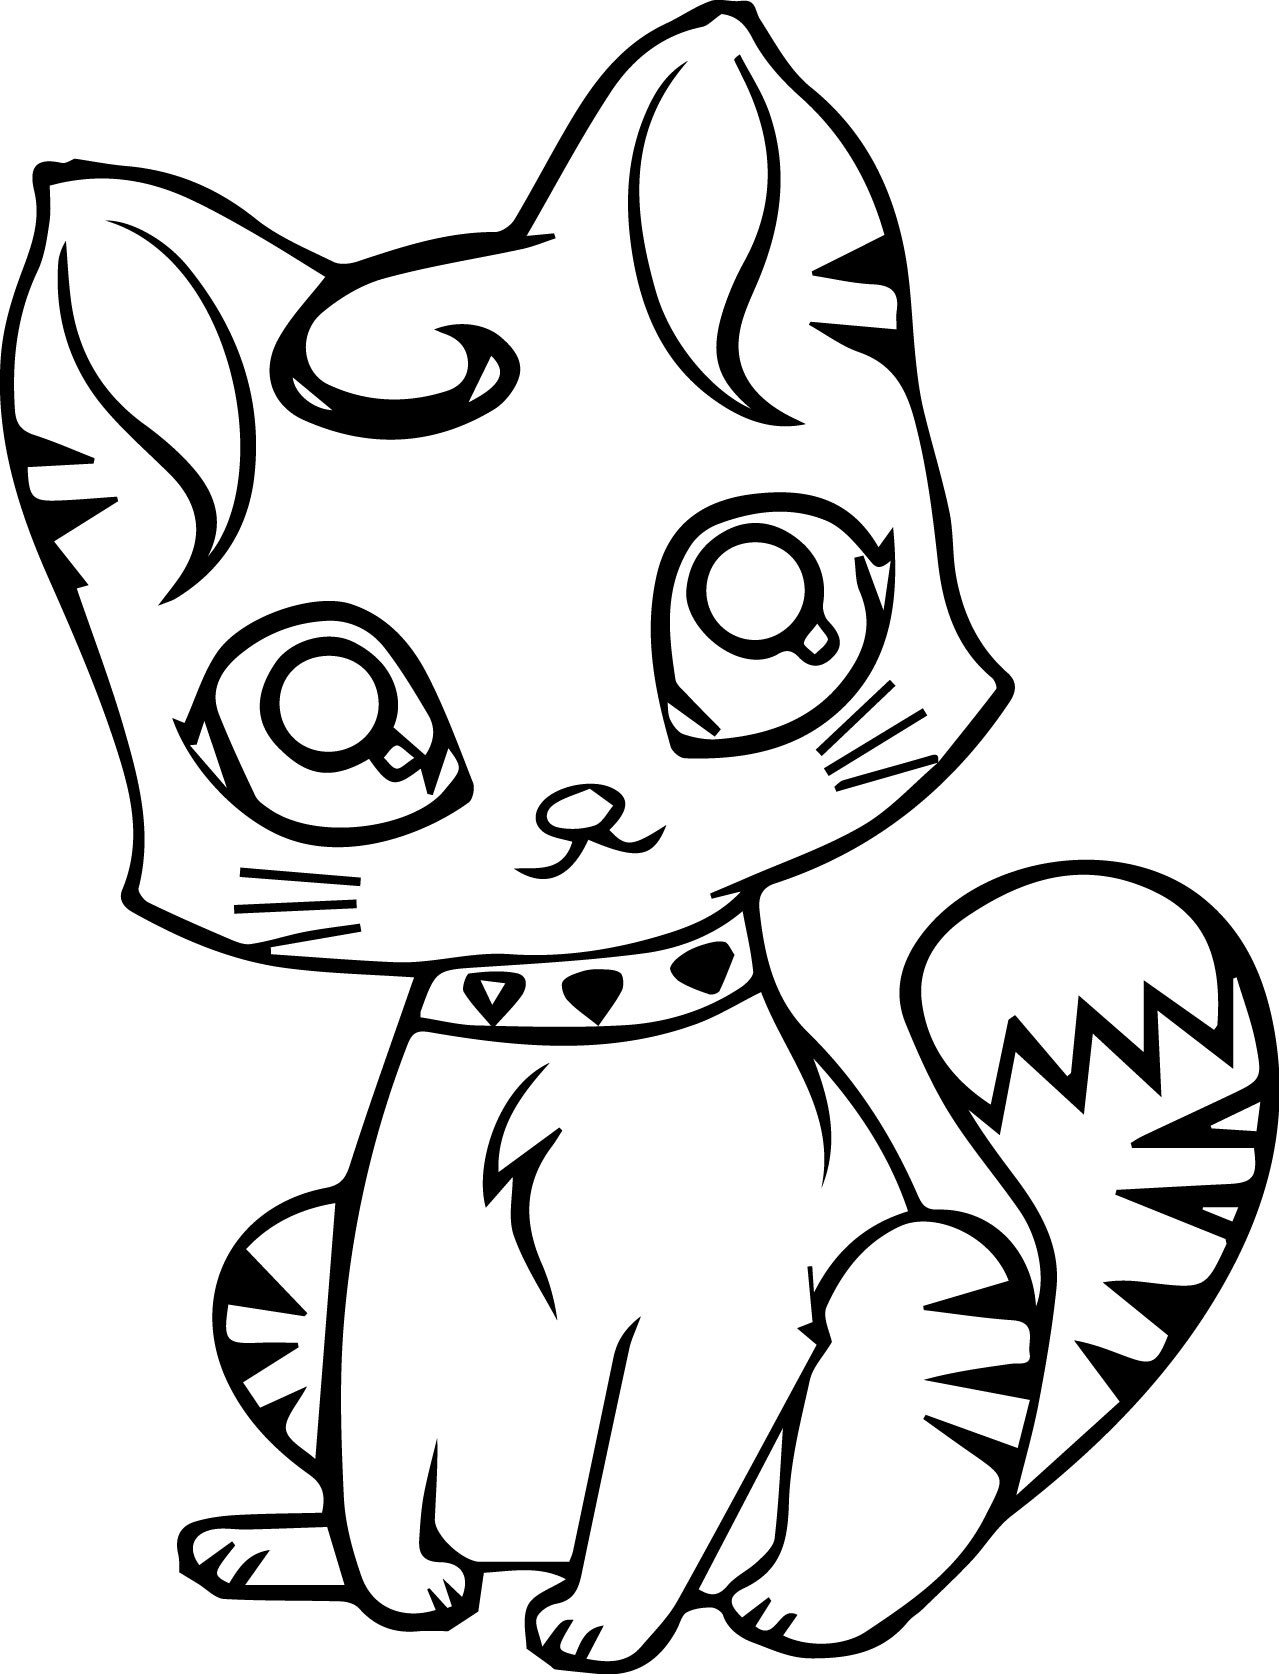 kitty cat printable coloring pages kitten coloring pages best coloring pages for kids coloring printable kitty pages cat